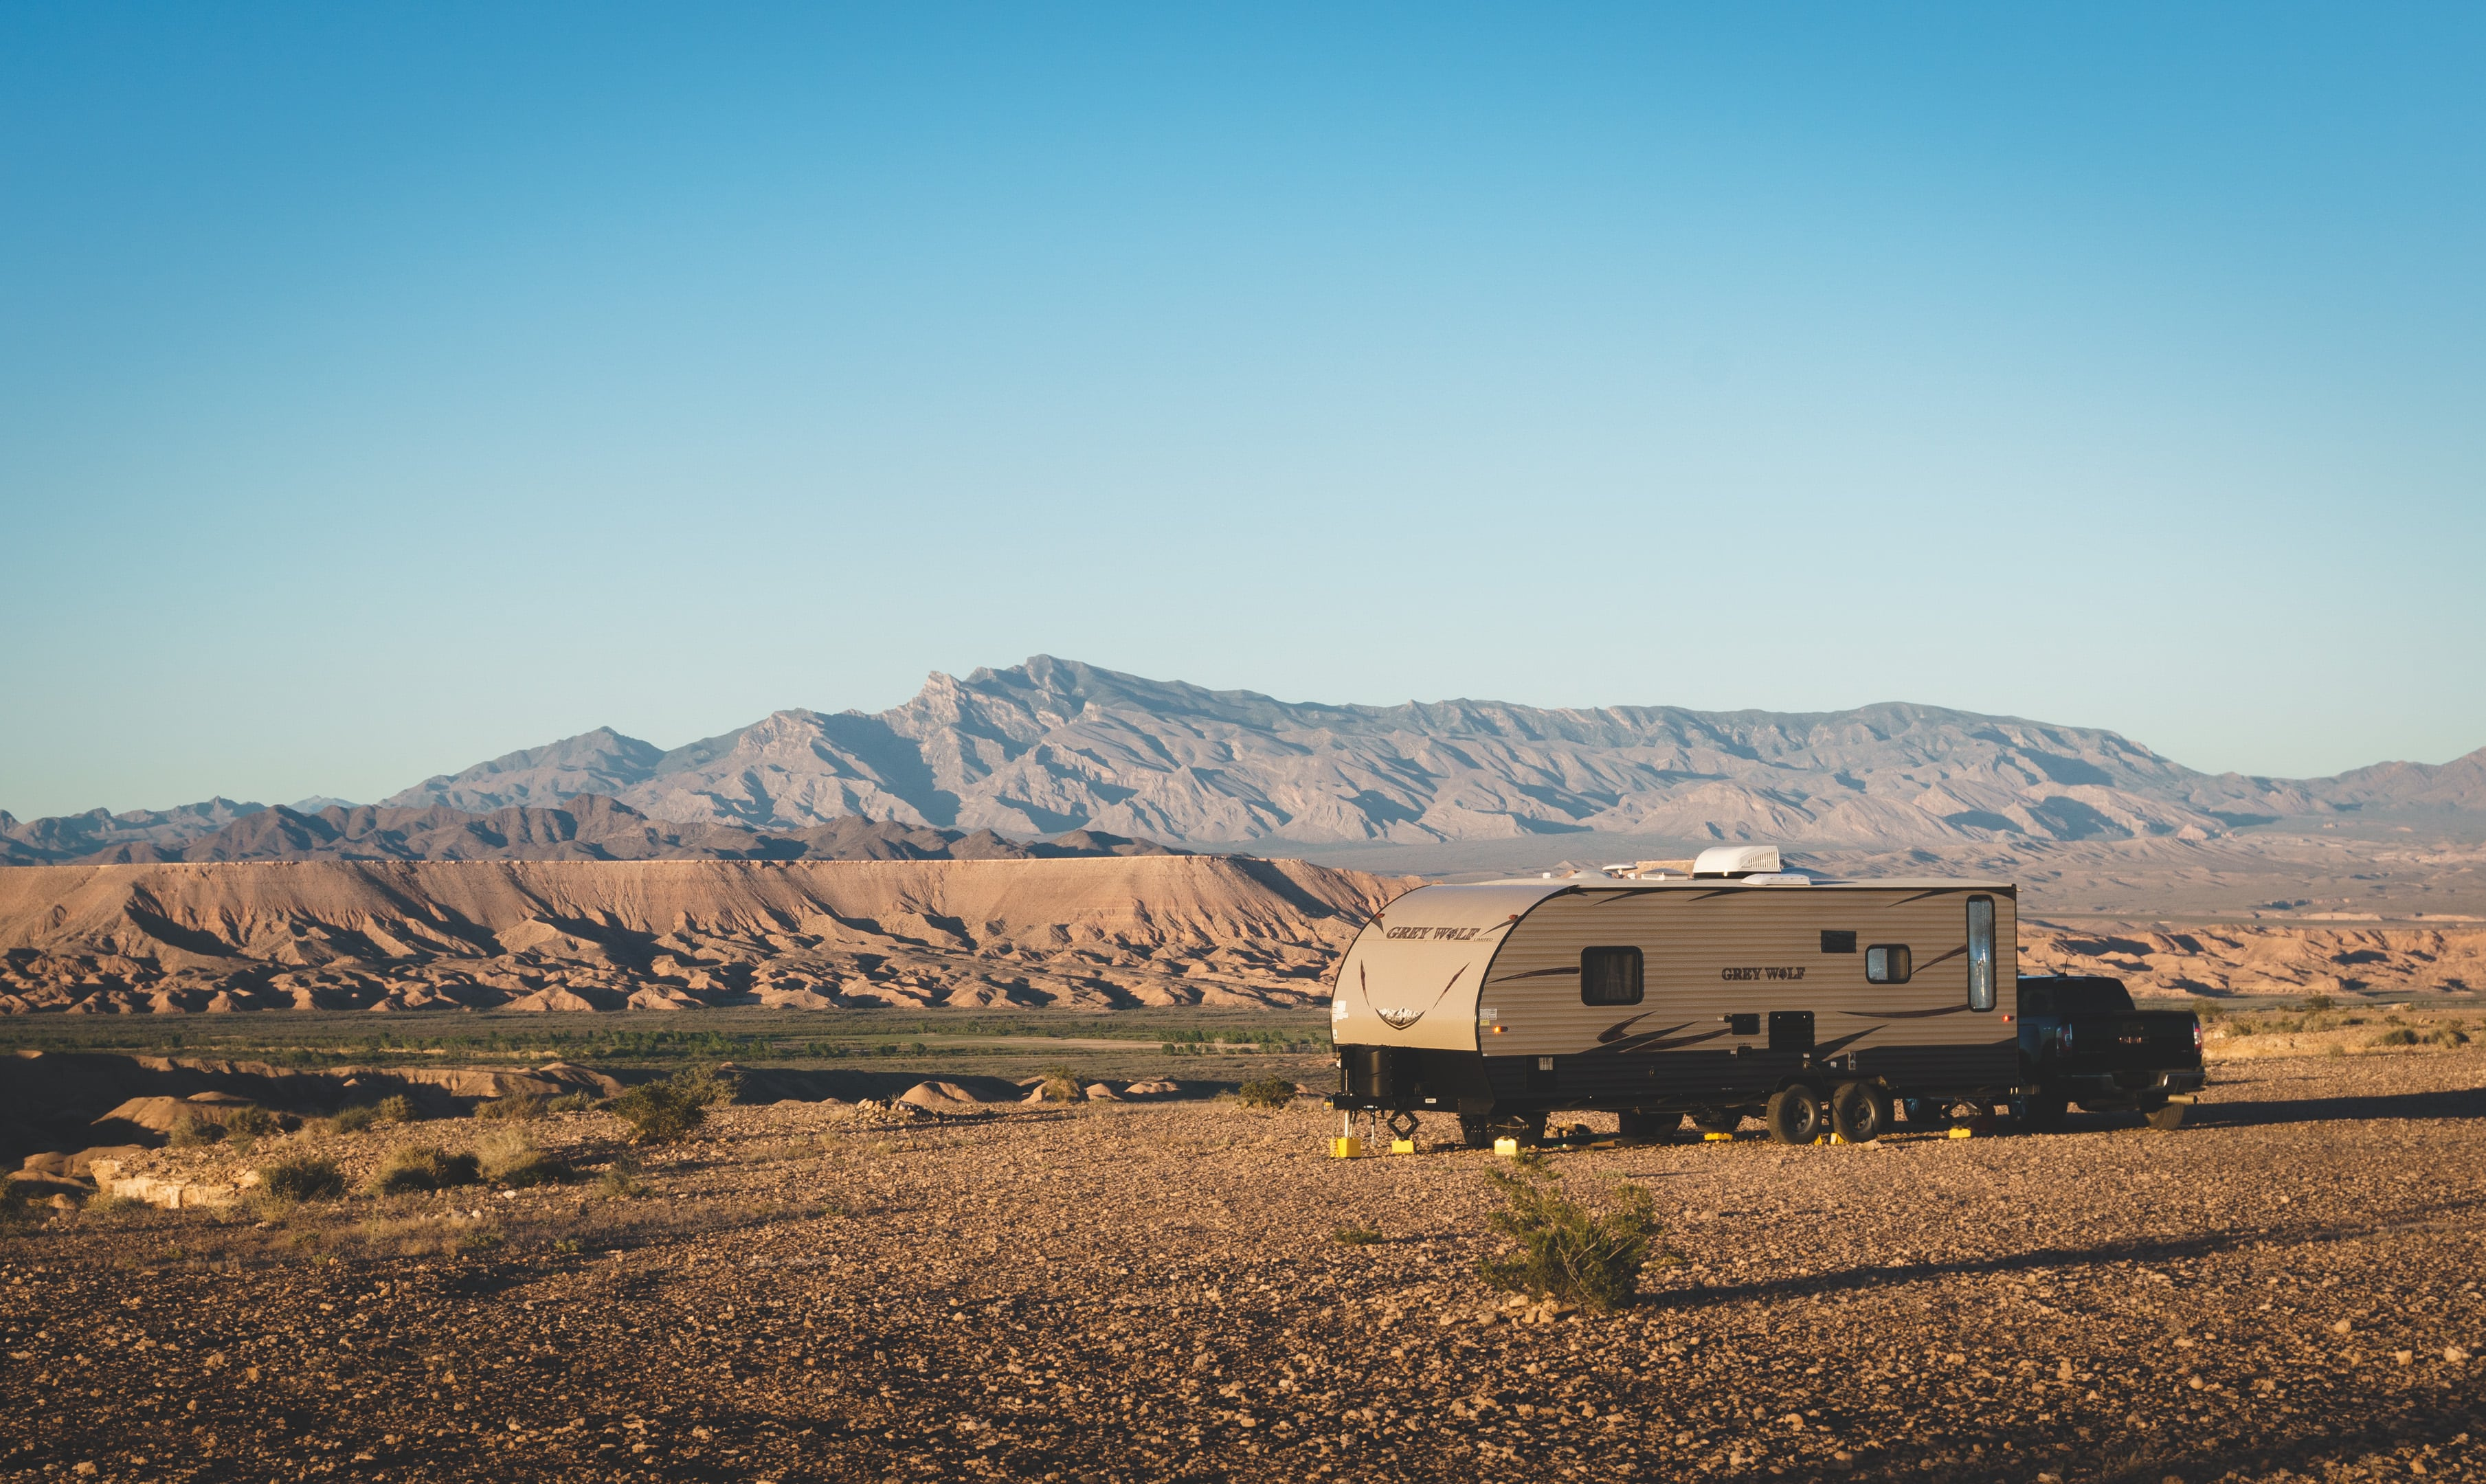 The privacy of camping on BLM land cant be beat!